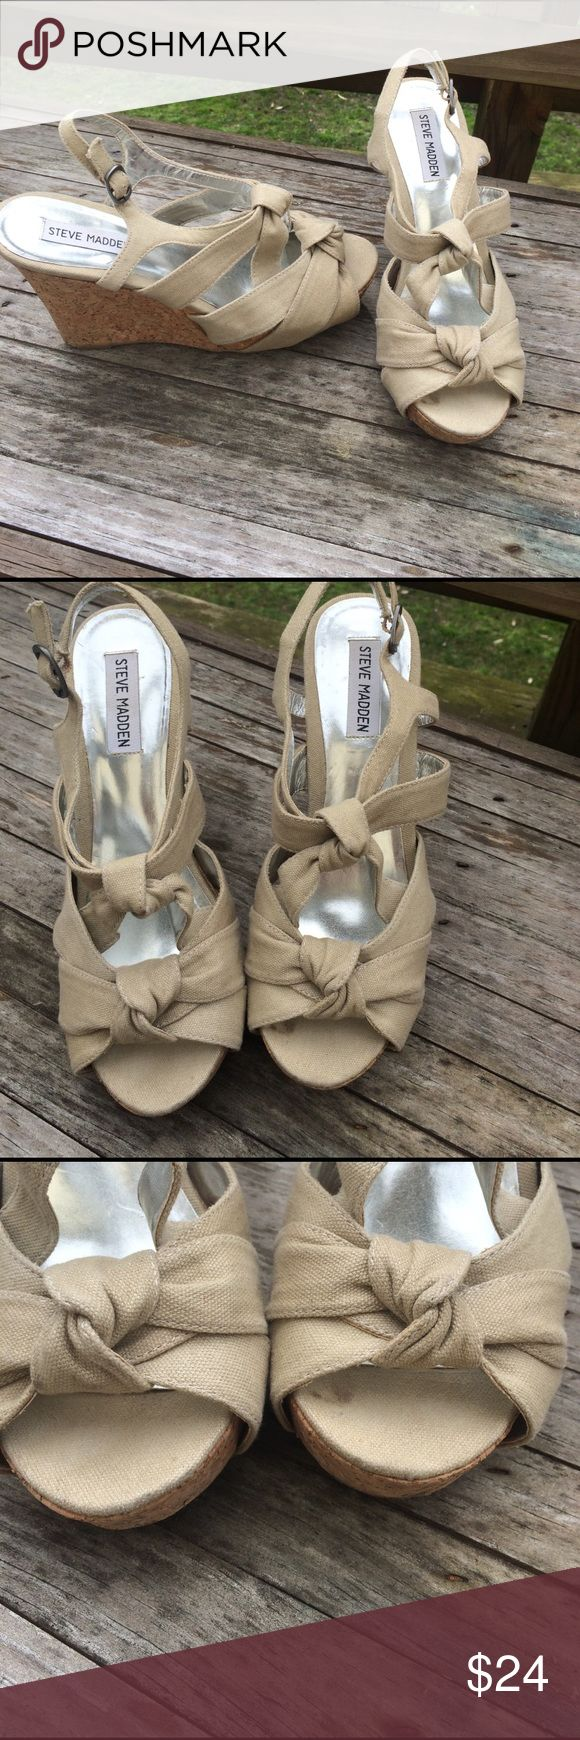 🎈WEEKEND SHOE Sale🎈Steve Madden Canvas Wedges Perfect for spring with a sundress or even with capris or ankle pants. Cream colored canvas knotted straps with a cork wedge. Steve Madden Shoes Wedges